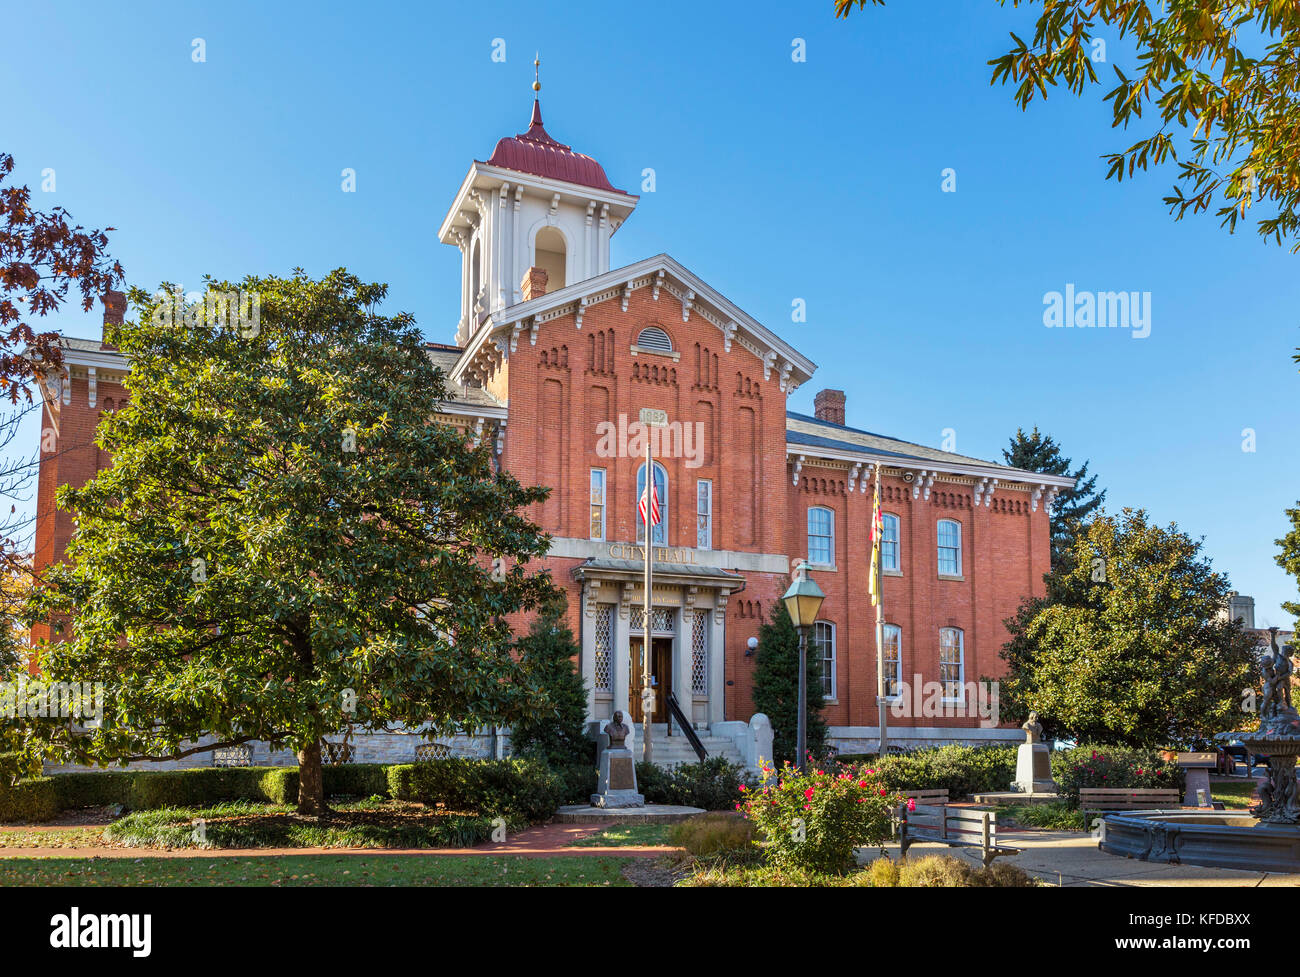 City Hall, Frederick, Maryland, USA - Stock Image